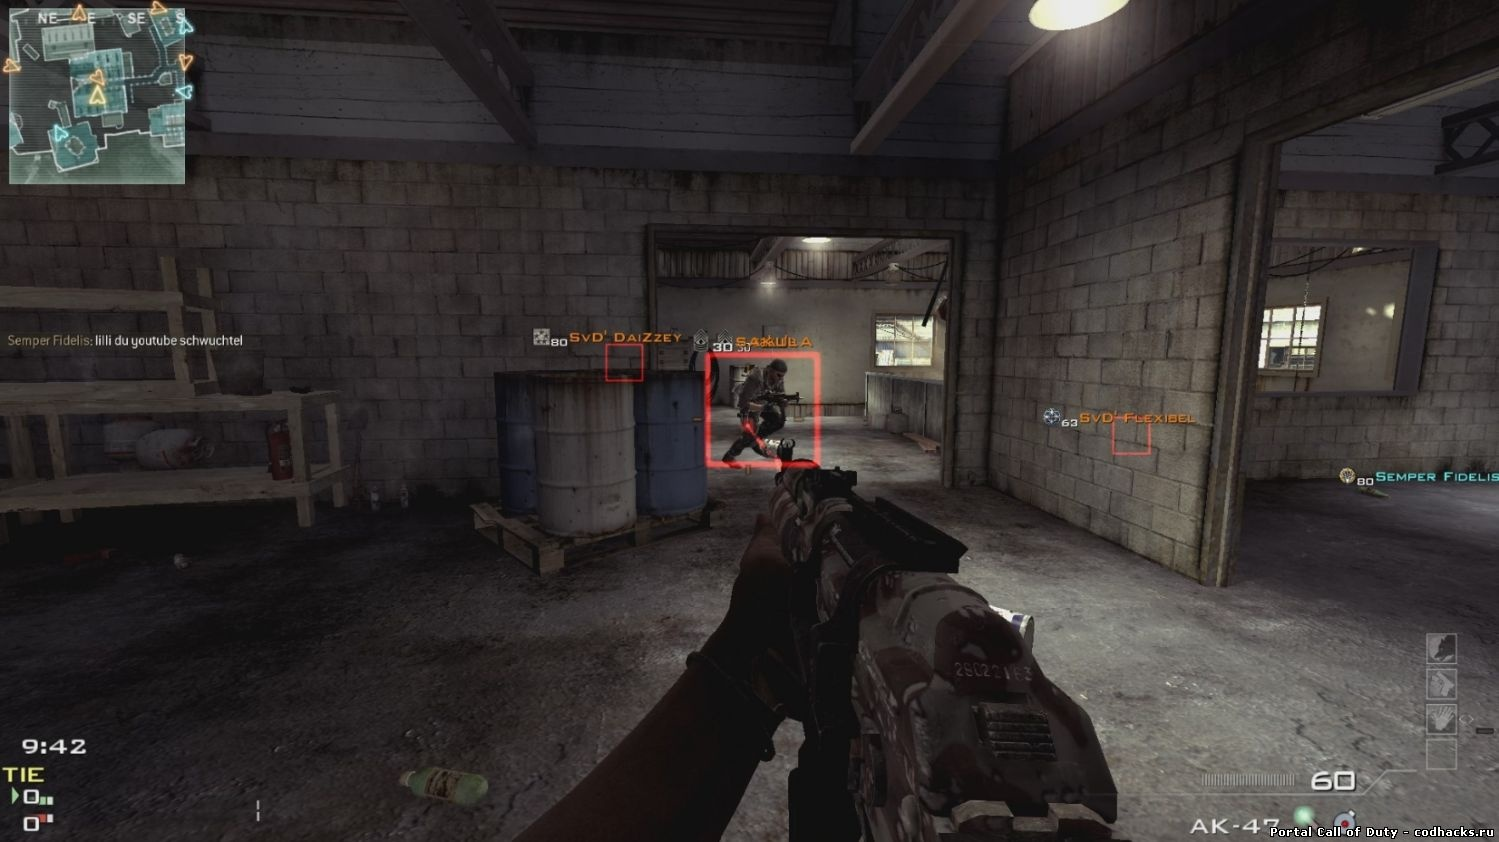 Get all of your favorite cod8 mw3 hacks, cheats, trainers and call of duty 8 modern warfare 3 hack downloads